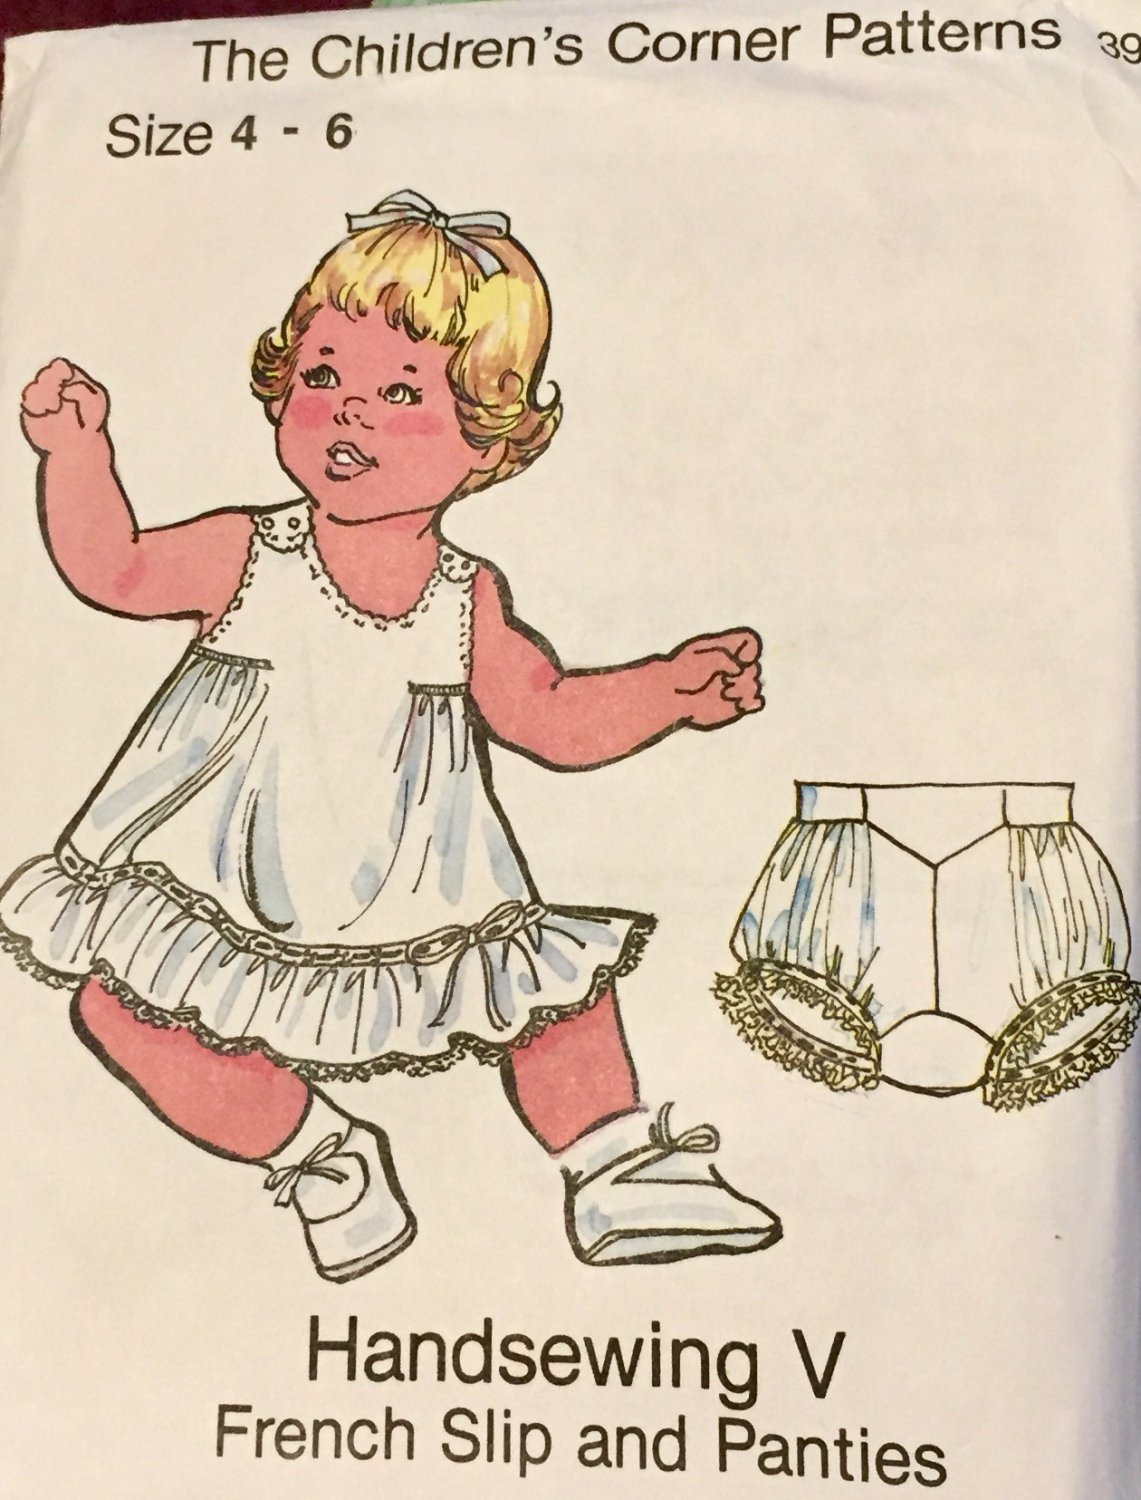 Childrens Corner Handsewing V French Slip and Panties Sewing Pattern size 4 - 6